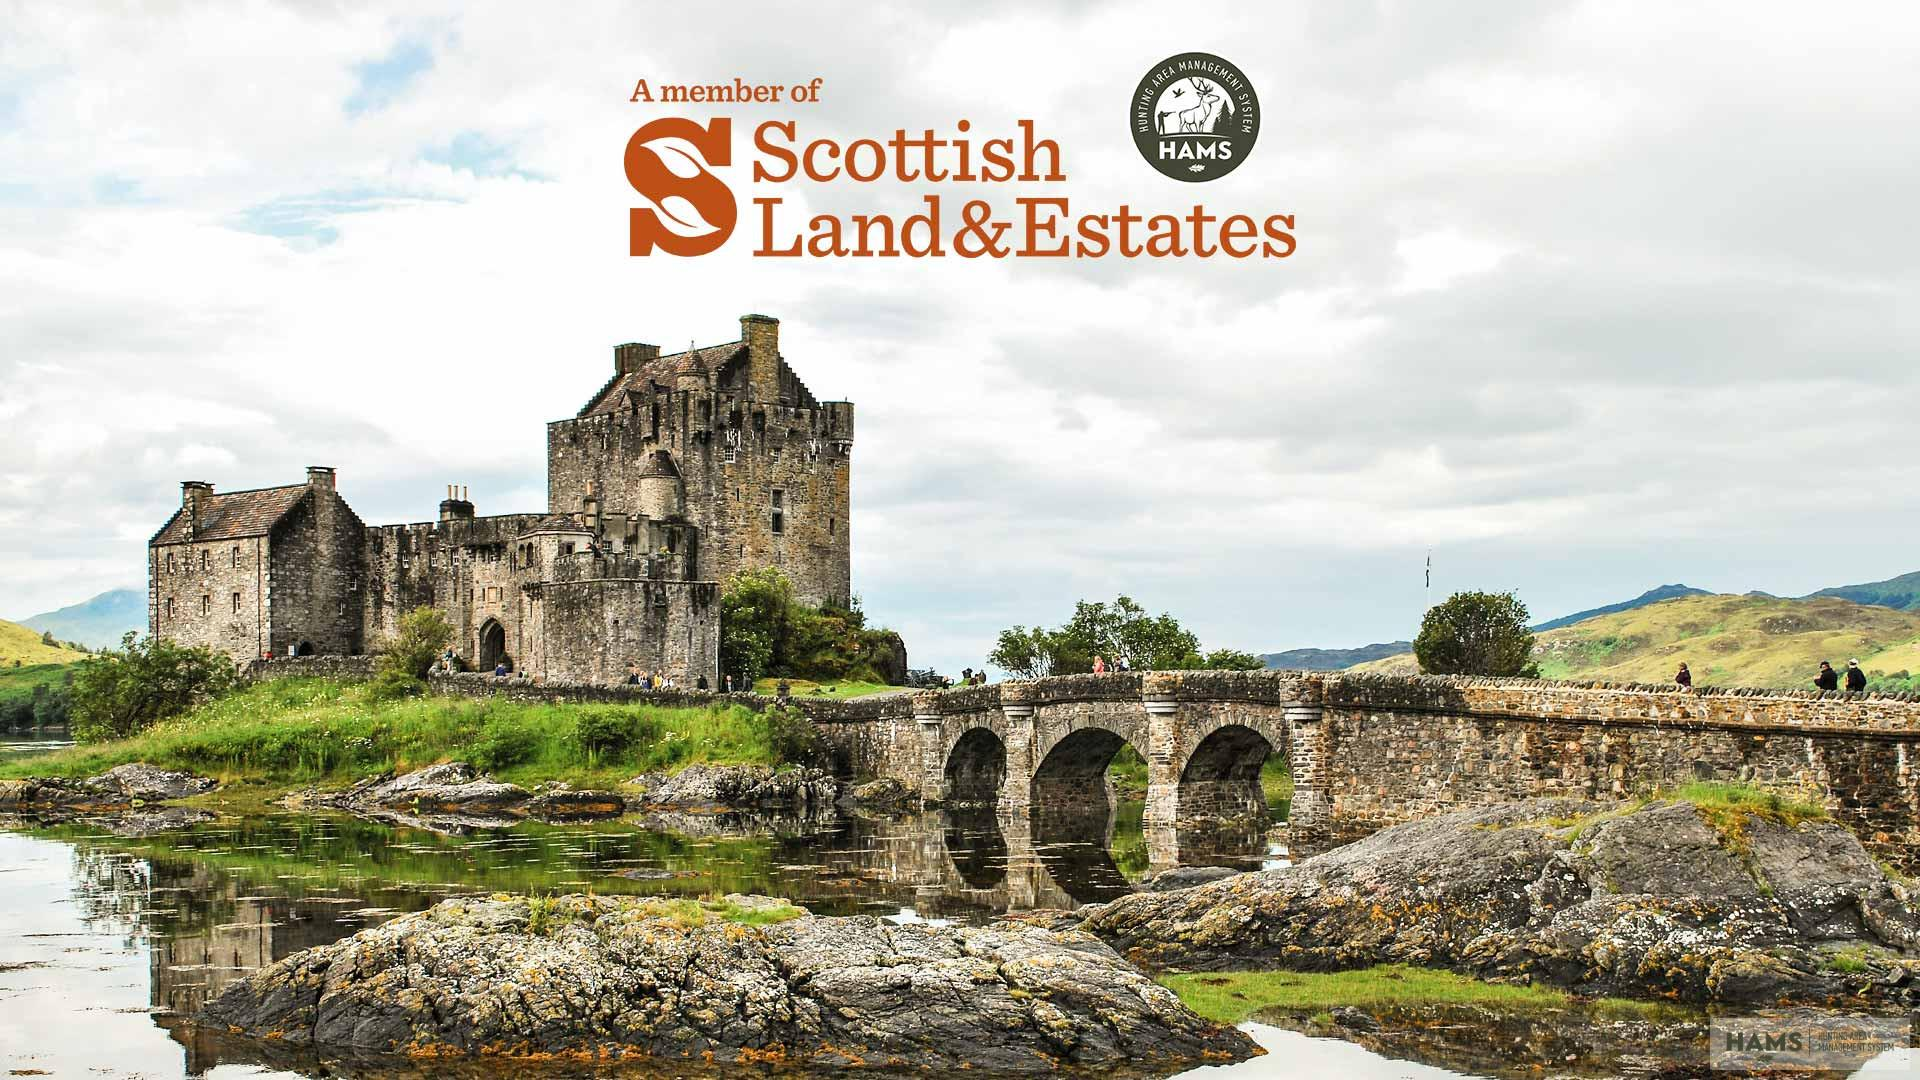 HAMS + Scottish Land & Estates